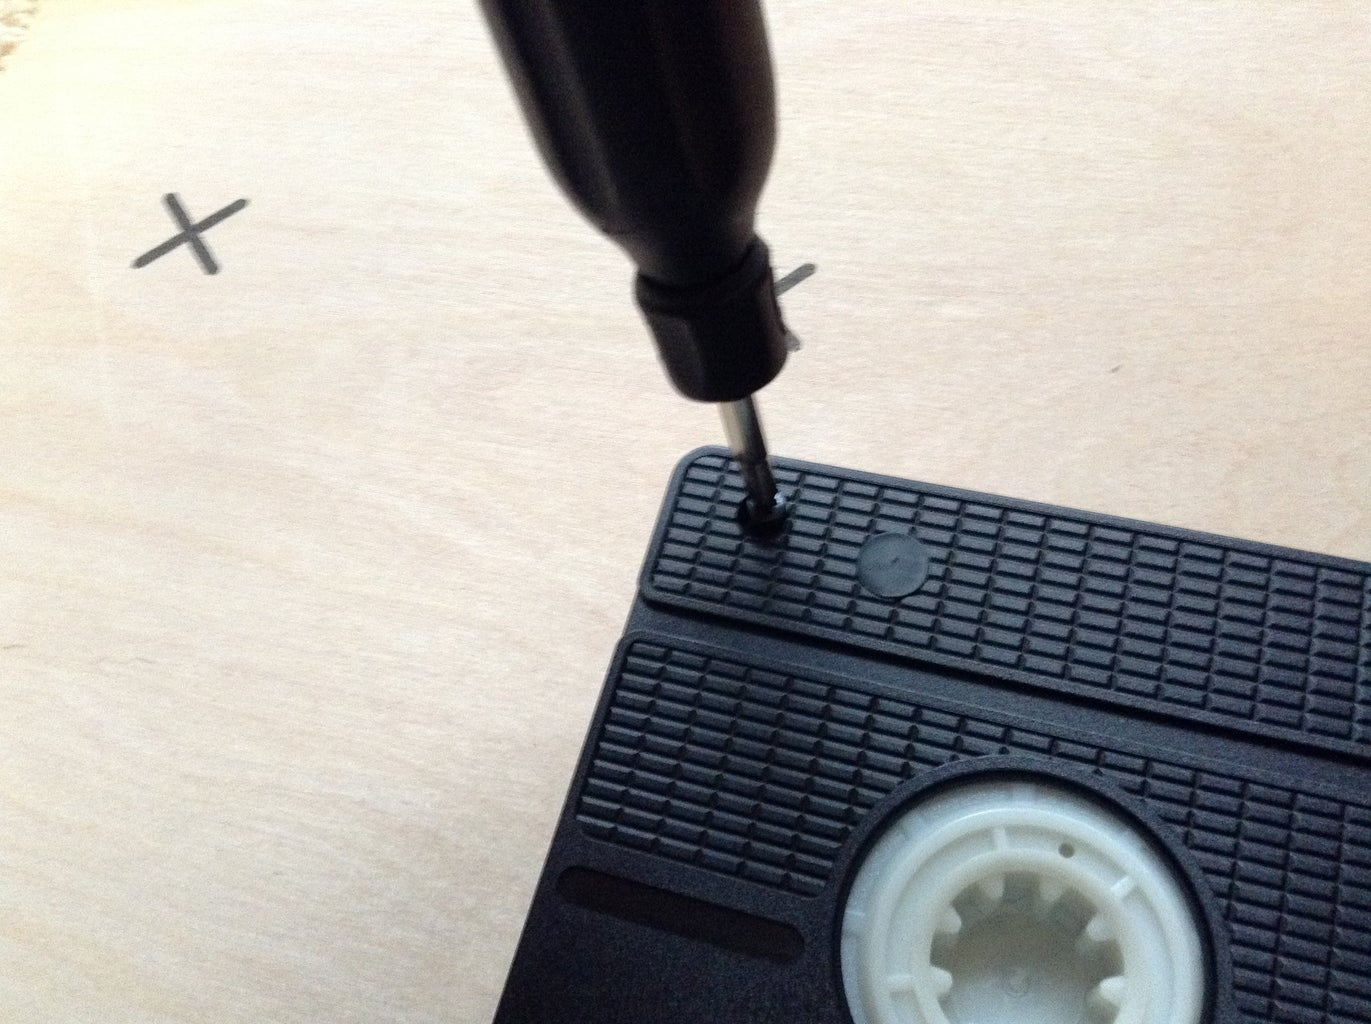 Taking Apart the VHS